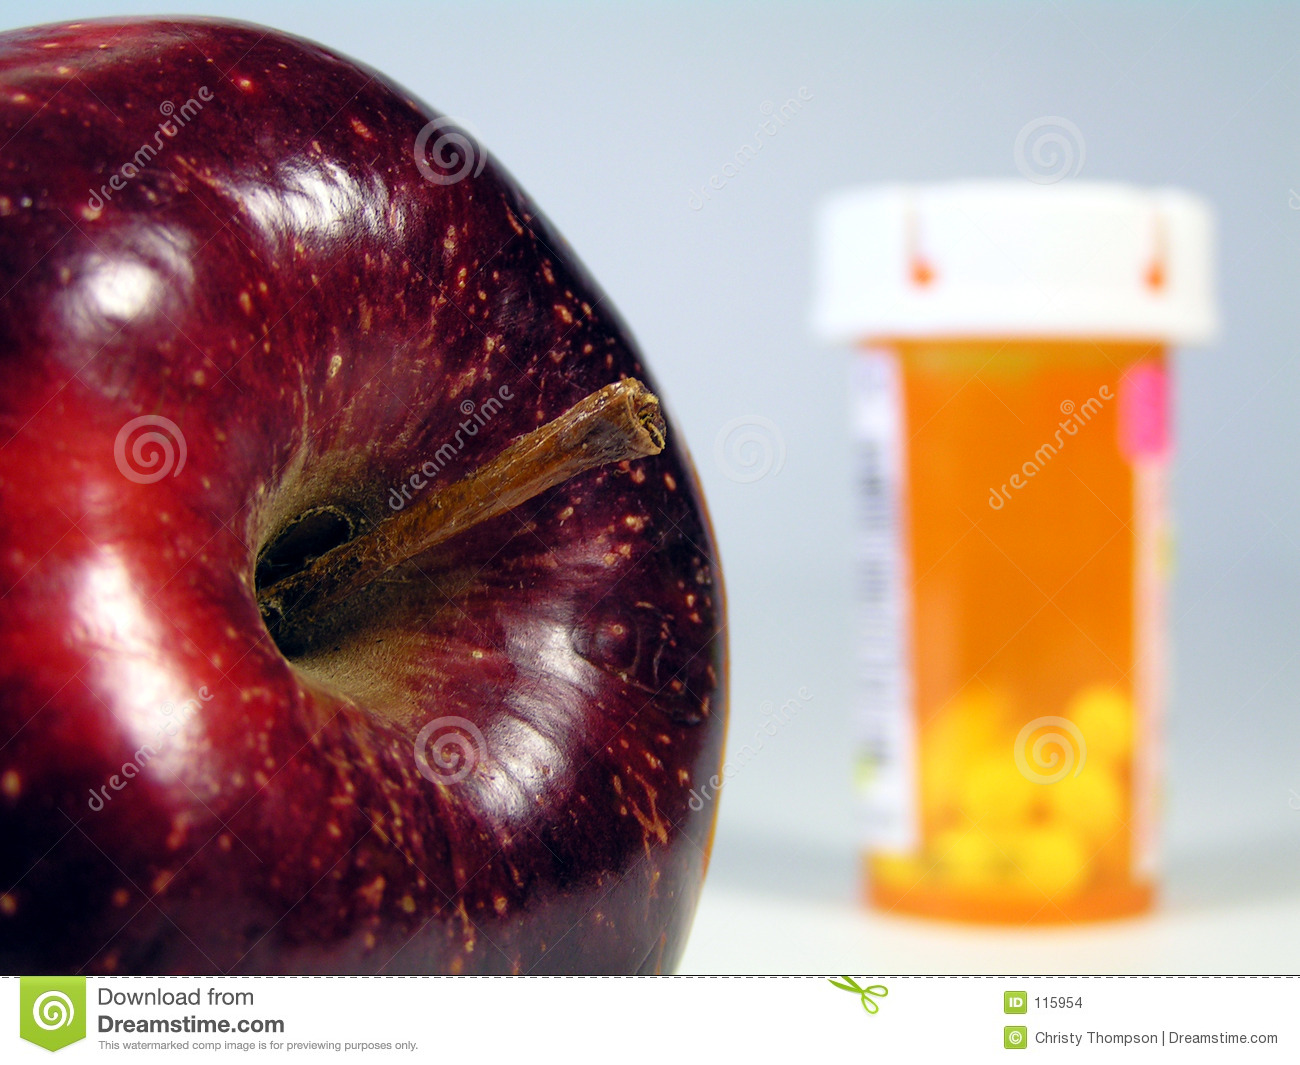 Apple and pill bottle